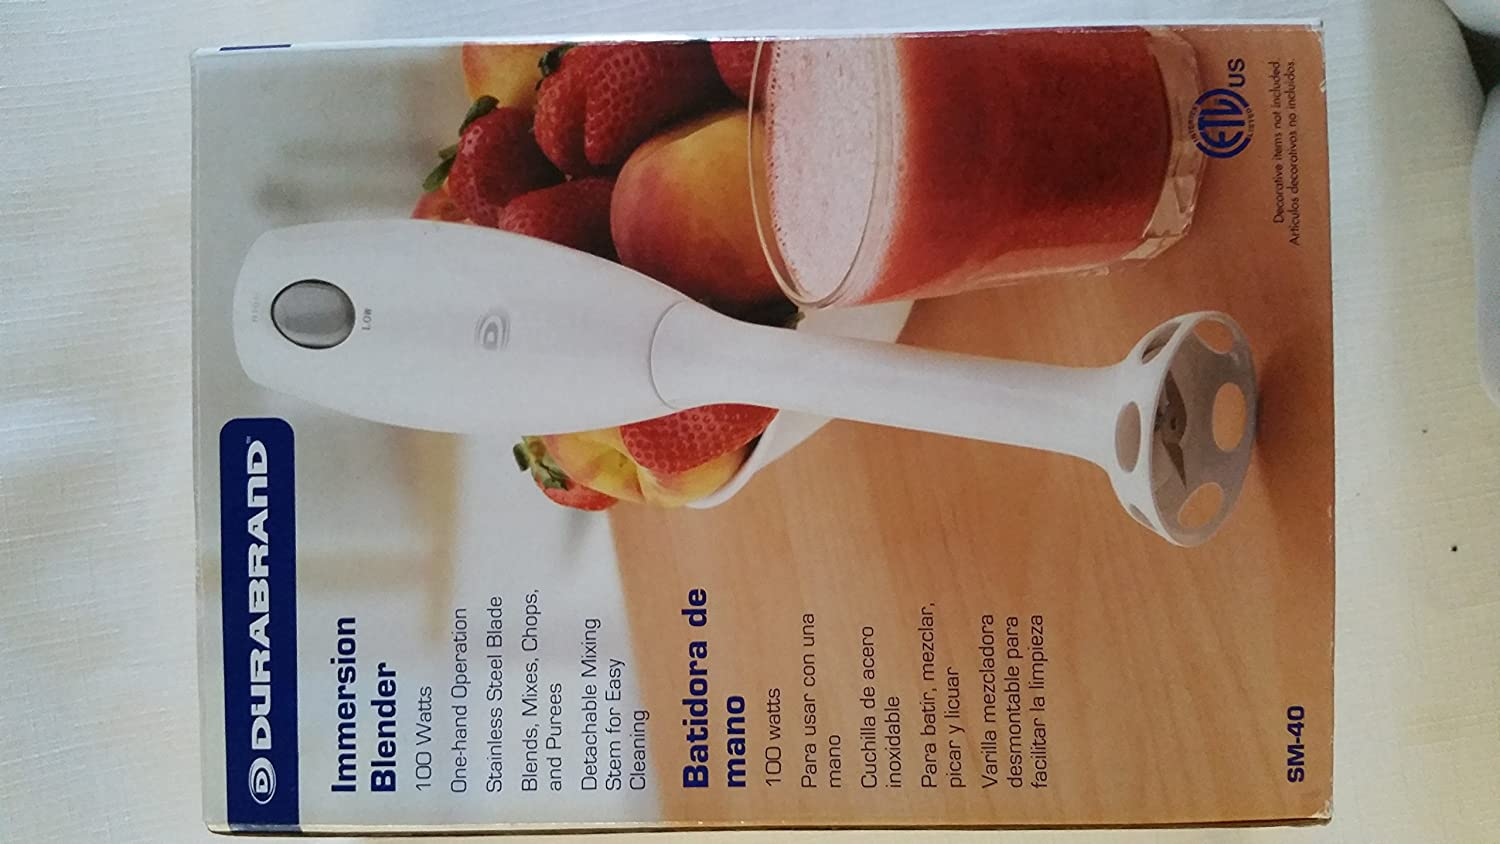 Amazon.com: Inmersion Blender: Kitchen & Dining